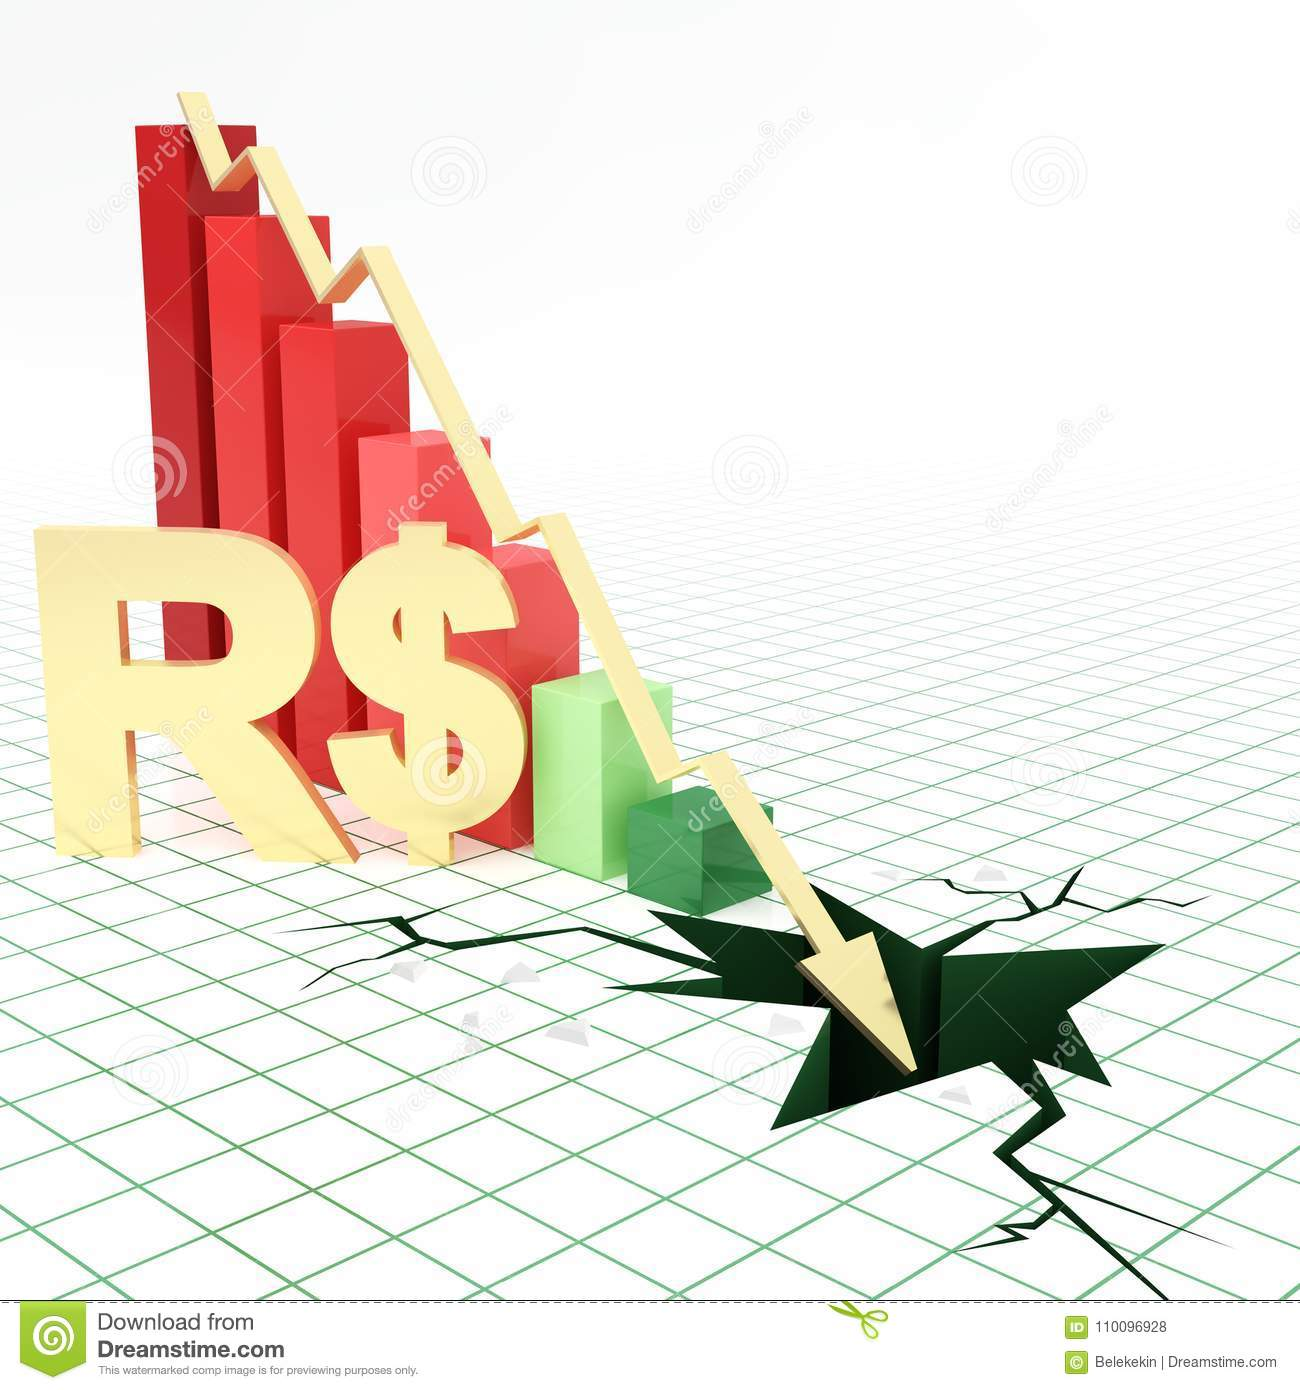 Real currency symbol bar graph going down stock illustration real currency symbol bar graph going down biocorpaavc Image collections